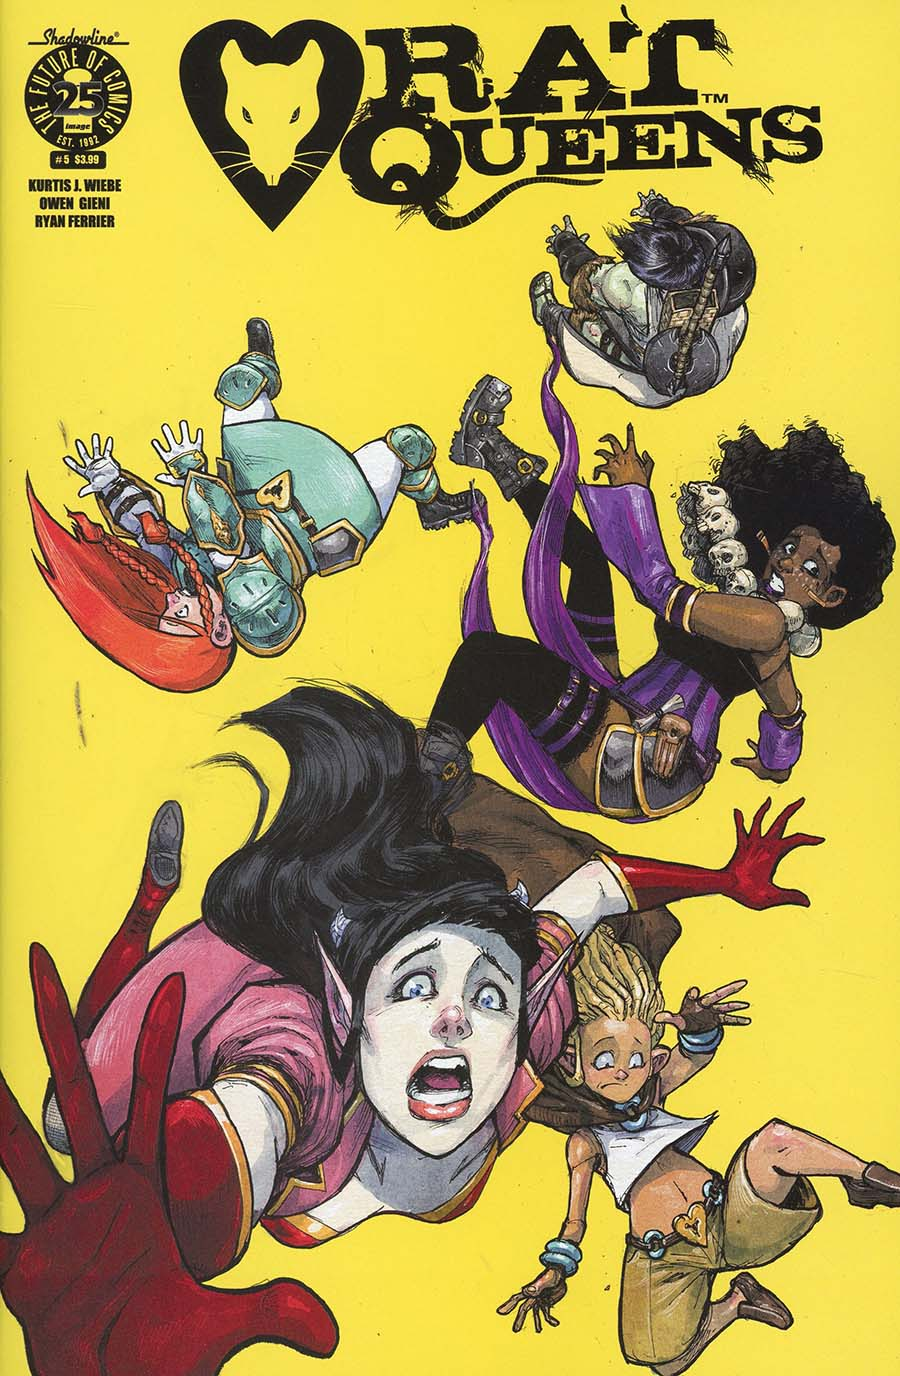 Rat Queens Vol 2 #5 Cover A Regular Owen Gieni Cover